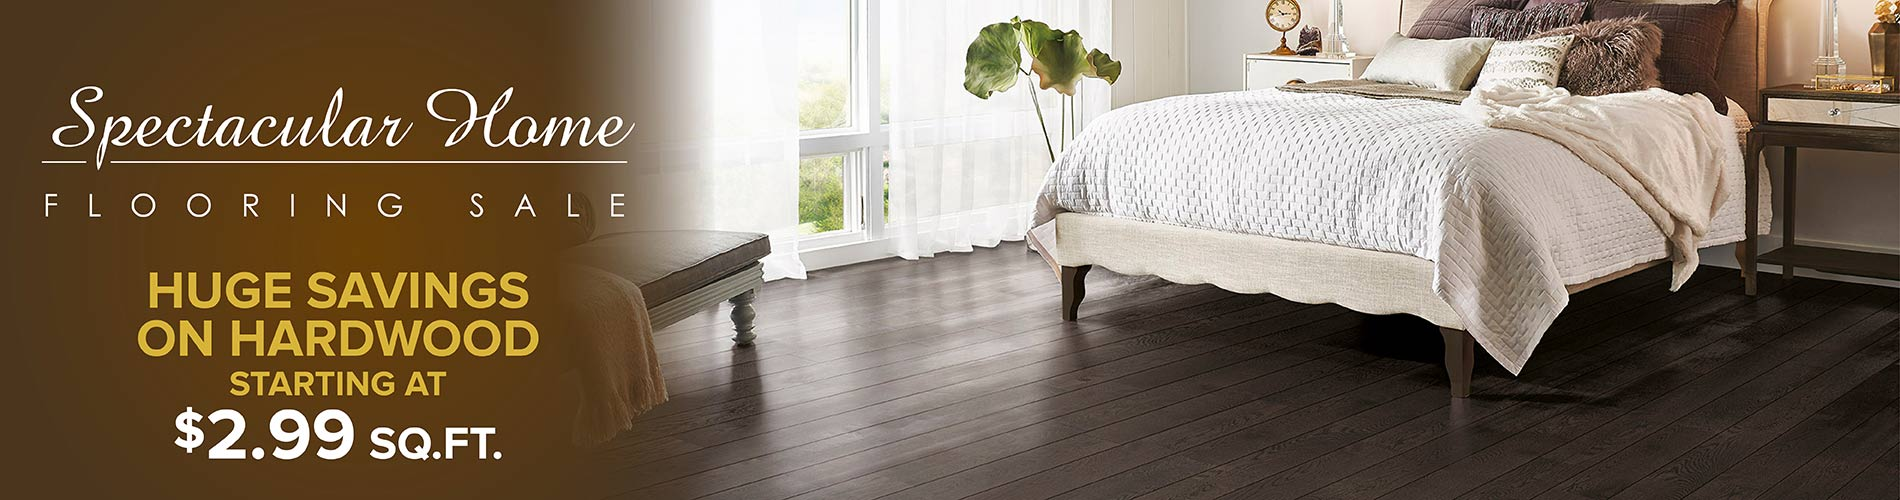 Huge Savings on Hardwood Flooring - Starting at $2.99 SQ. FT. at Murley's Floor Covering LLC!